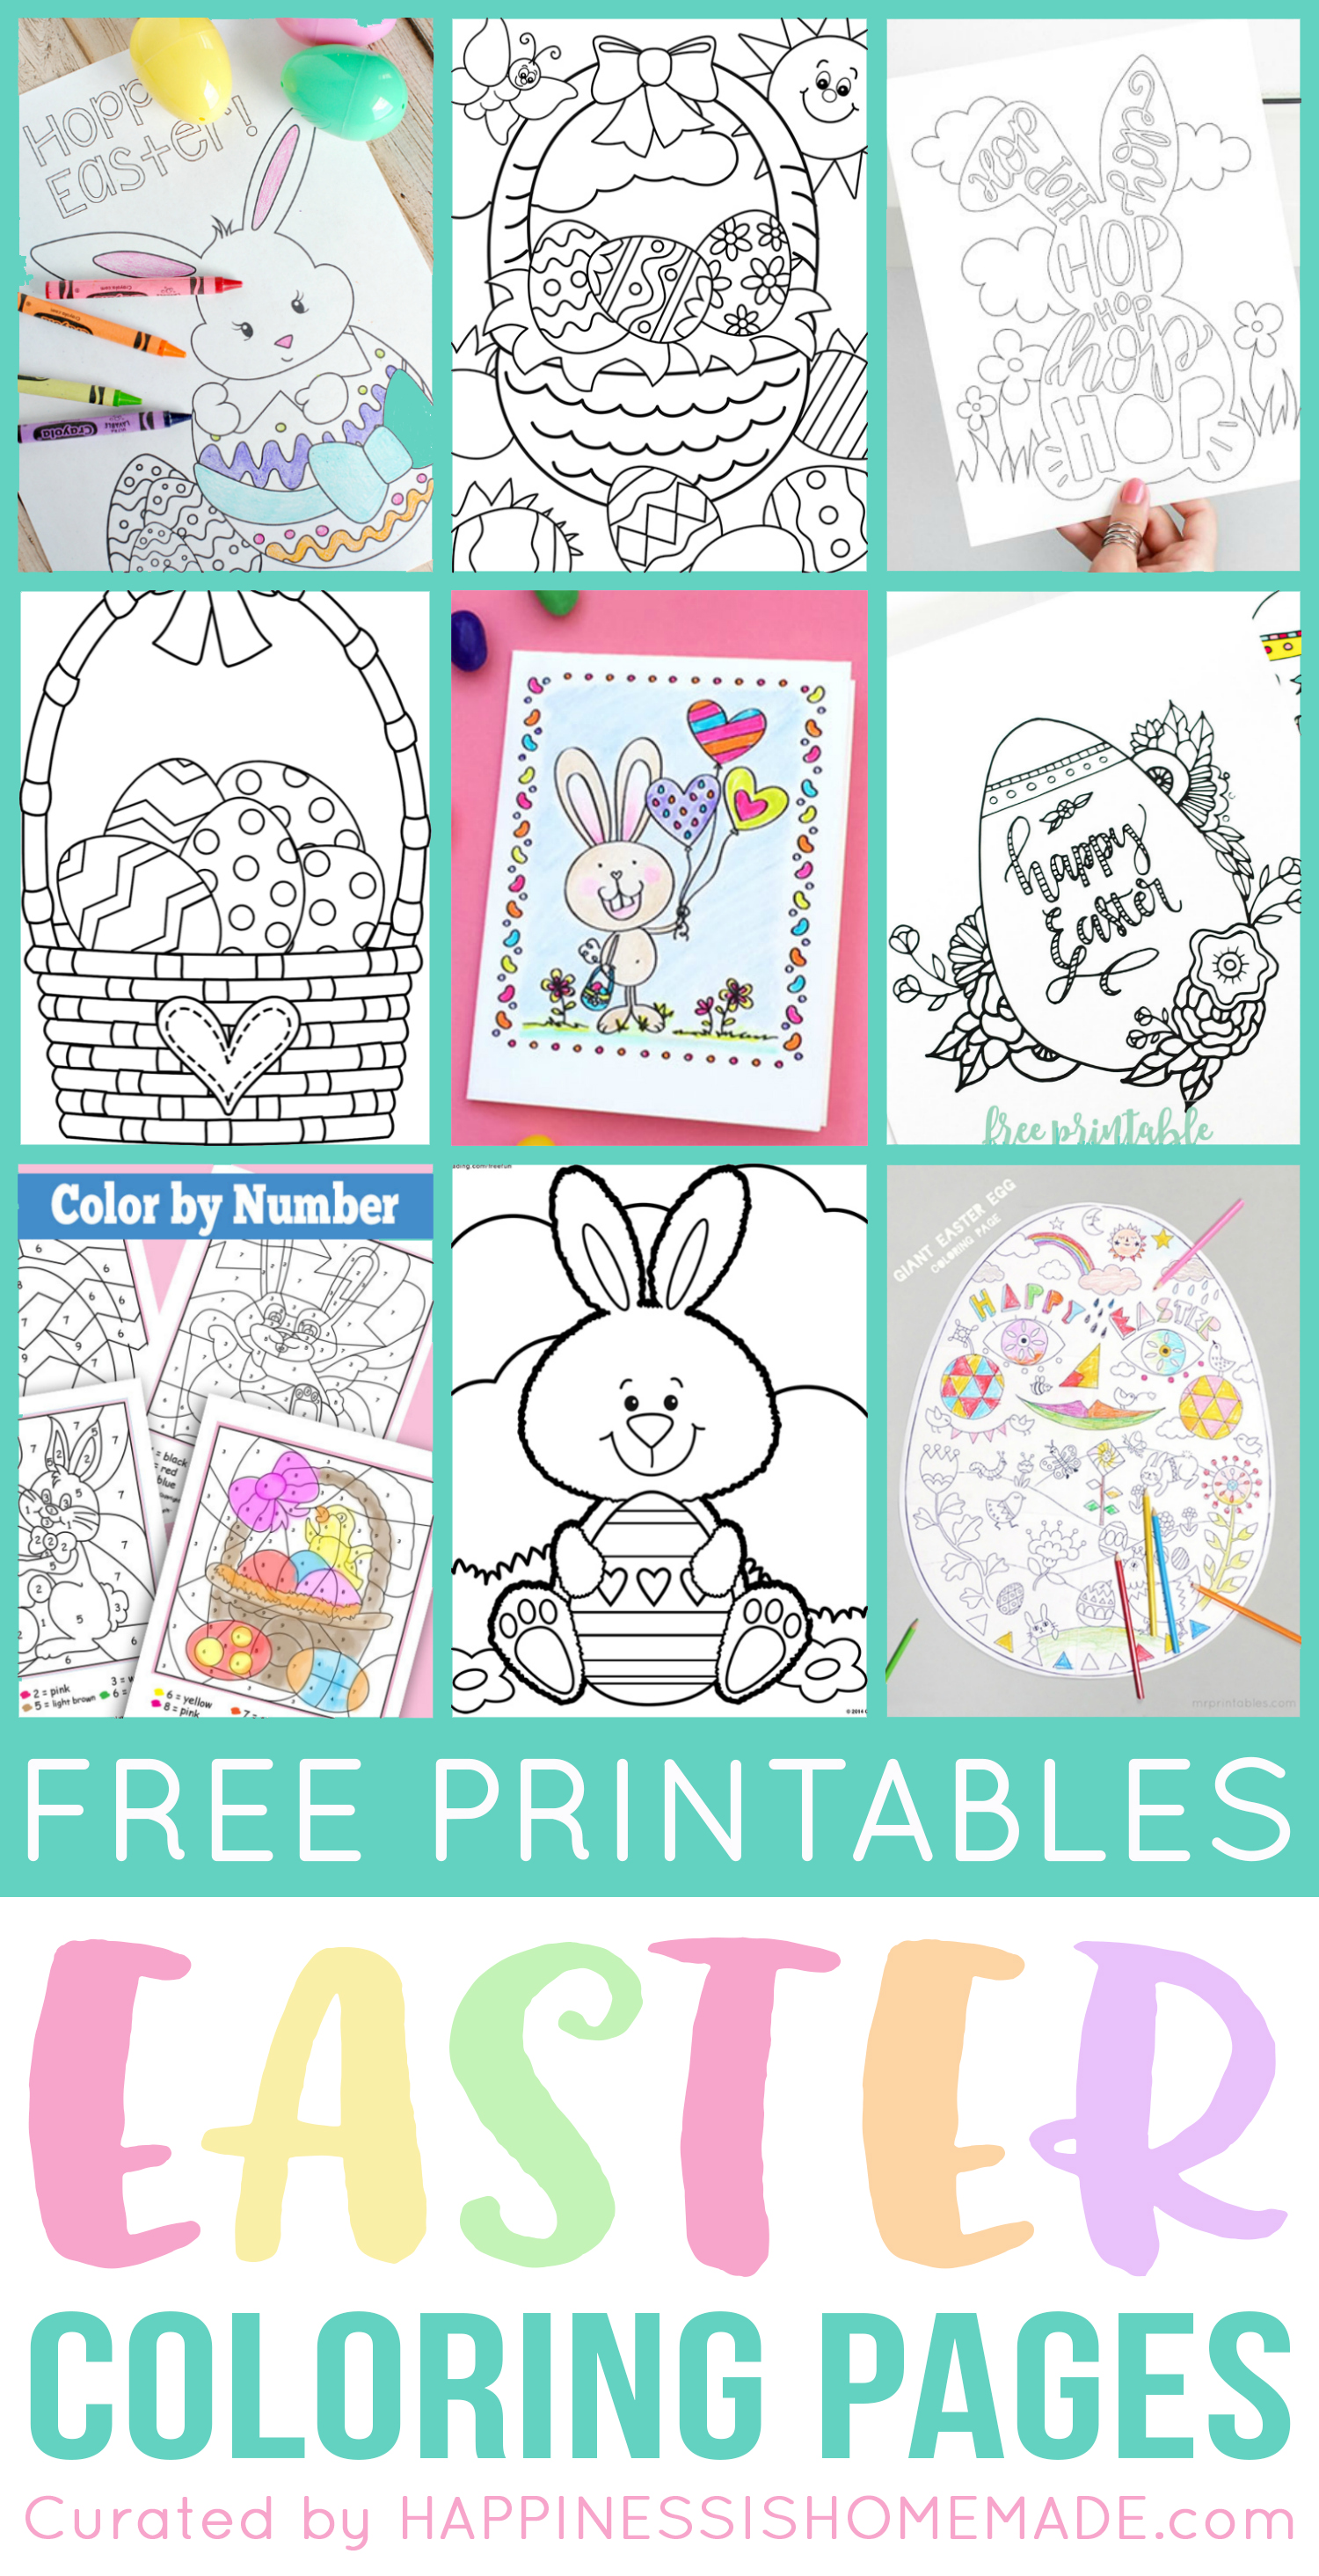 graphic regarding Easter Color by Number Printable identify Totally free Easter Coloring Internet pages - Joy is Do-it-yourself